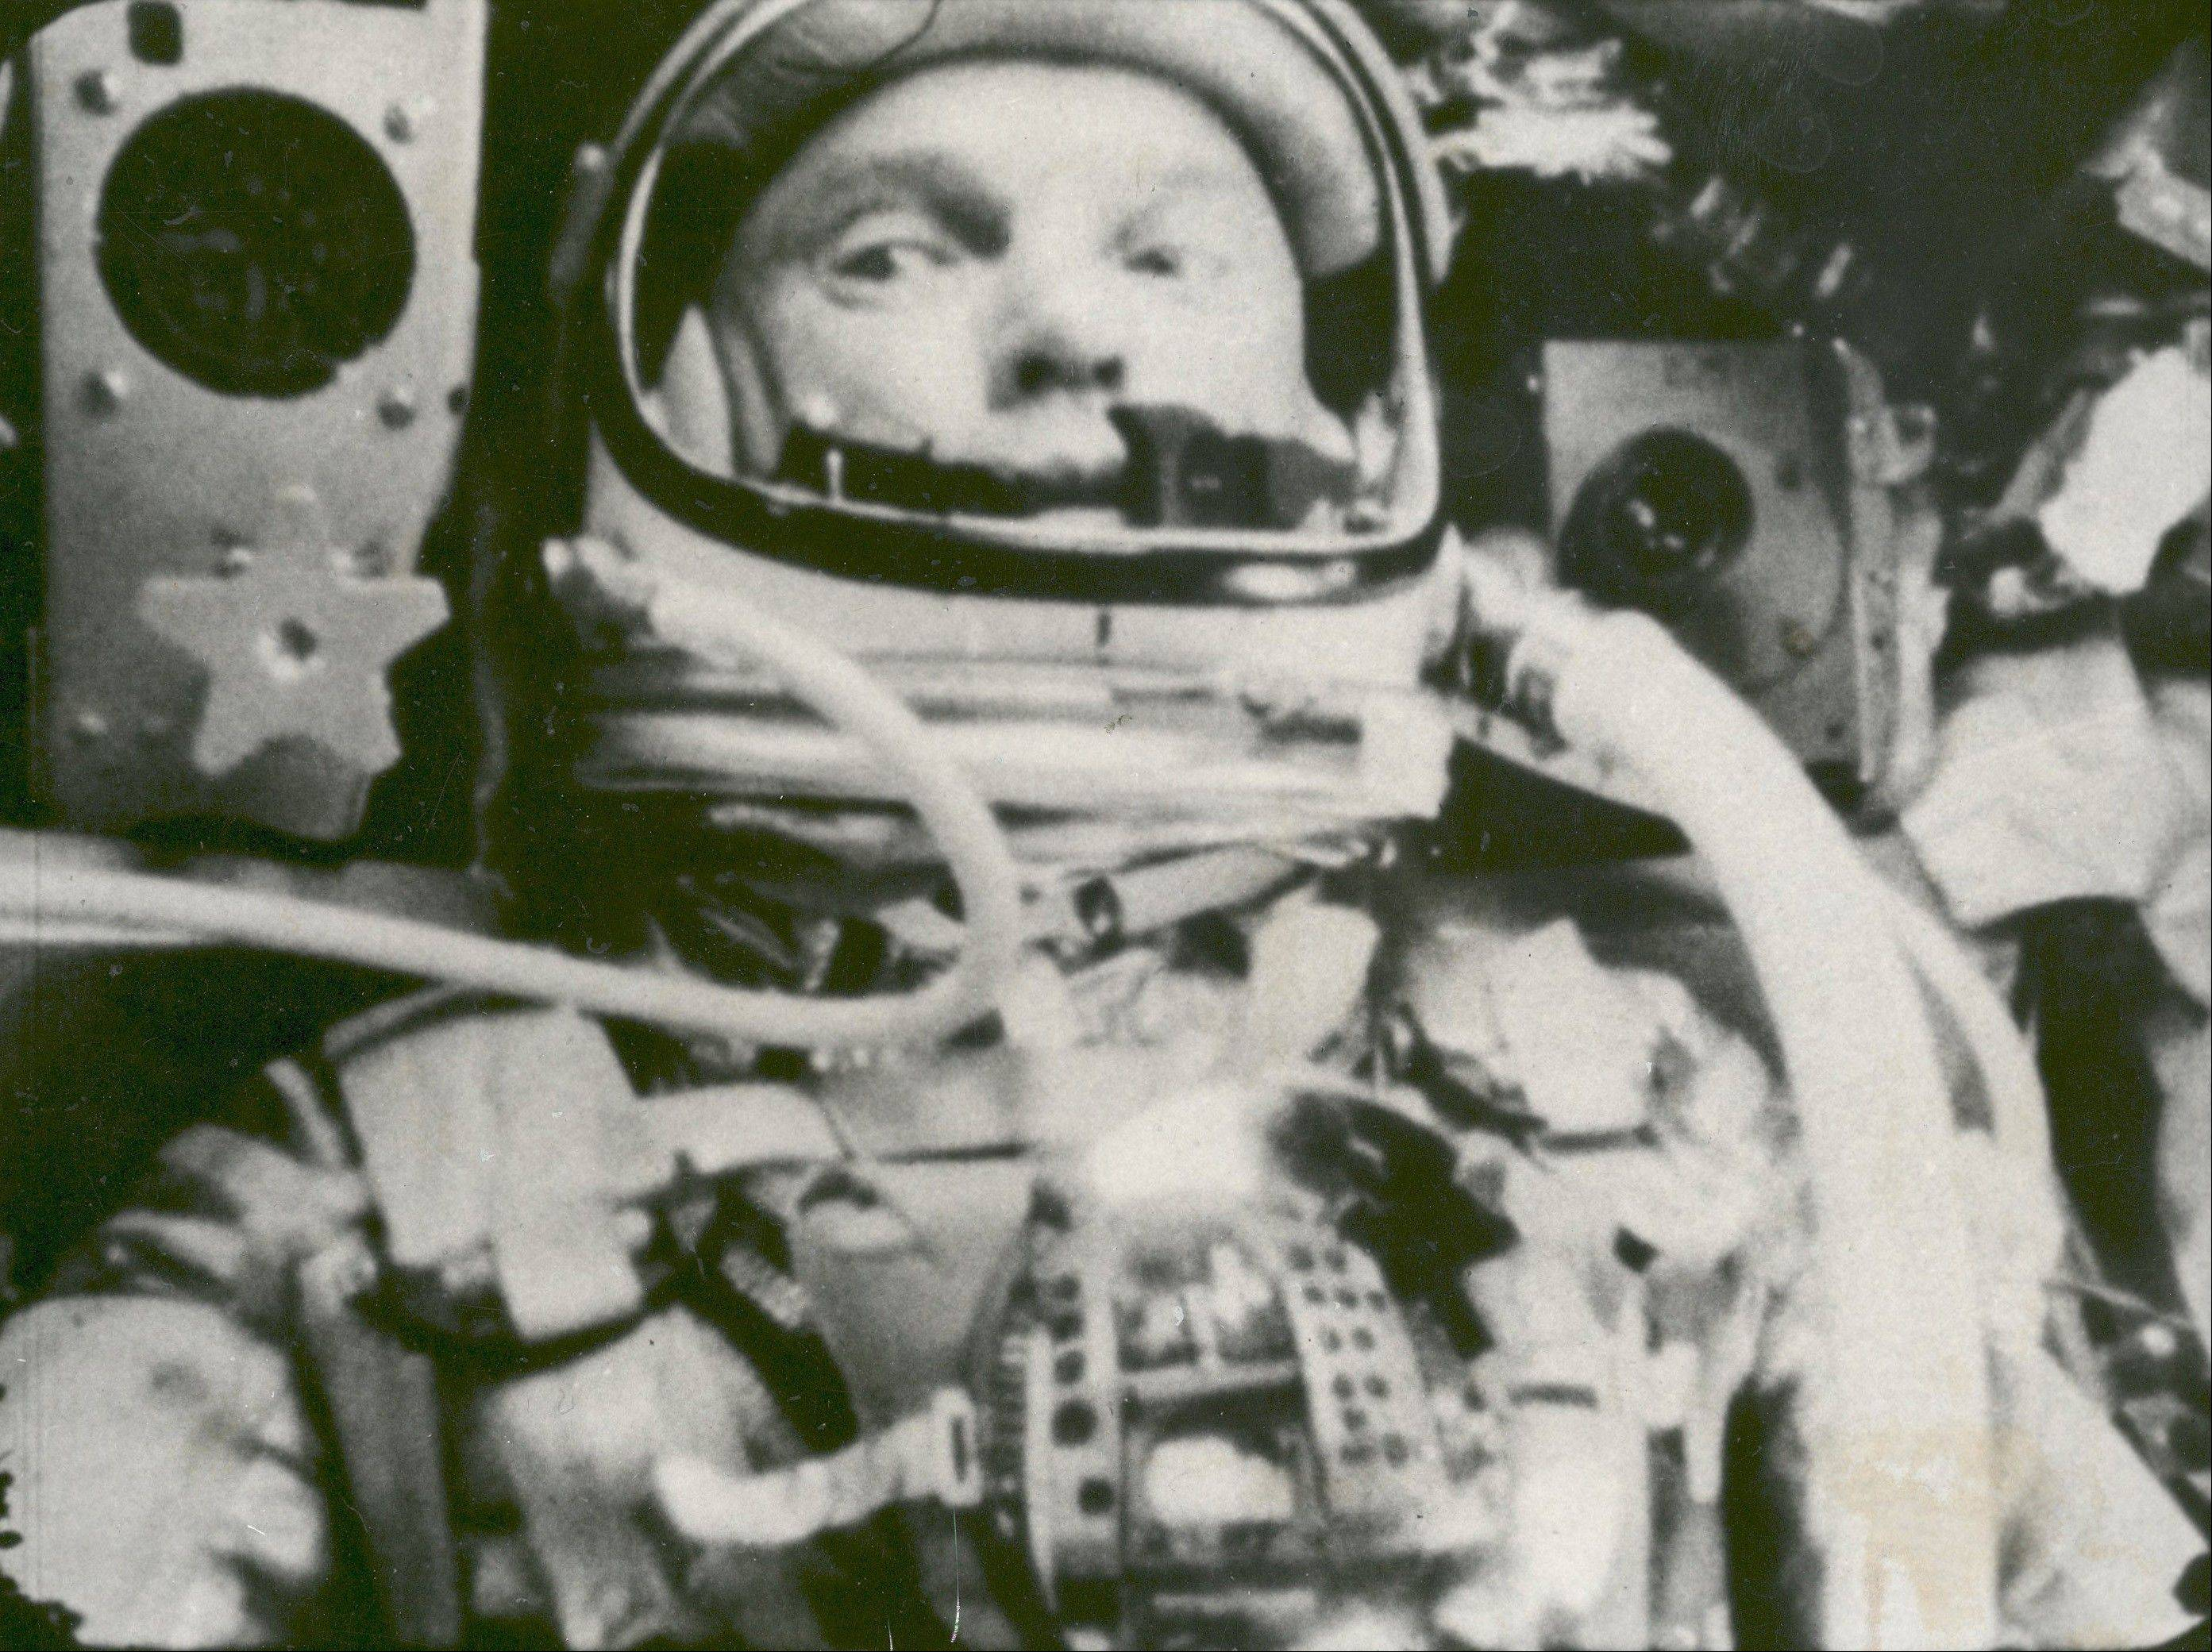 This Feb. 20, 1962 file photo made available by NASA shows astronaut John Glenn during his space flight in the Friendship 7 Mercury spacecraft, weightless and traveling at 17,500 mph. The image was made by an automatic sequence motion picture camera. Glenn plans to mark the 50th anniversary of his historic spaceflight, Monday, Feb. 20, 2012, with a series of events at Ohio State University, including a special dinner and a live chat with crew members aboard the International Space Station.